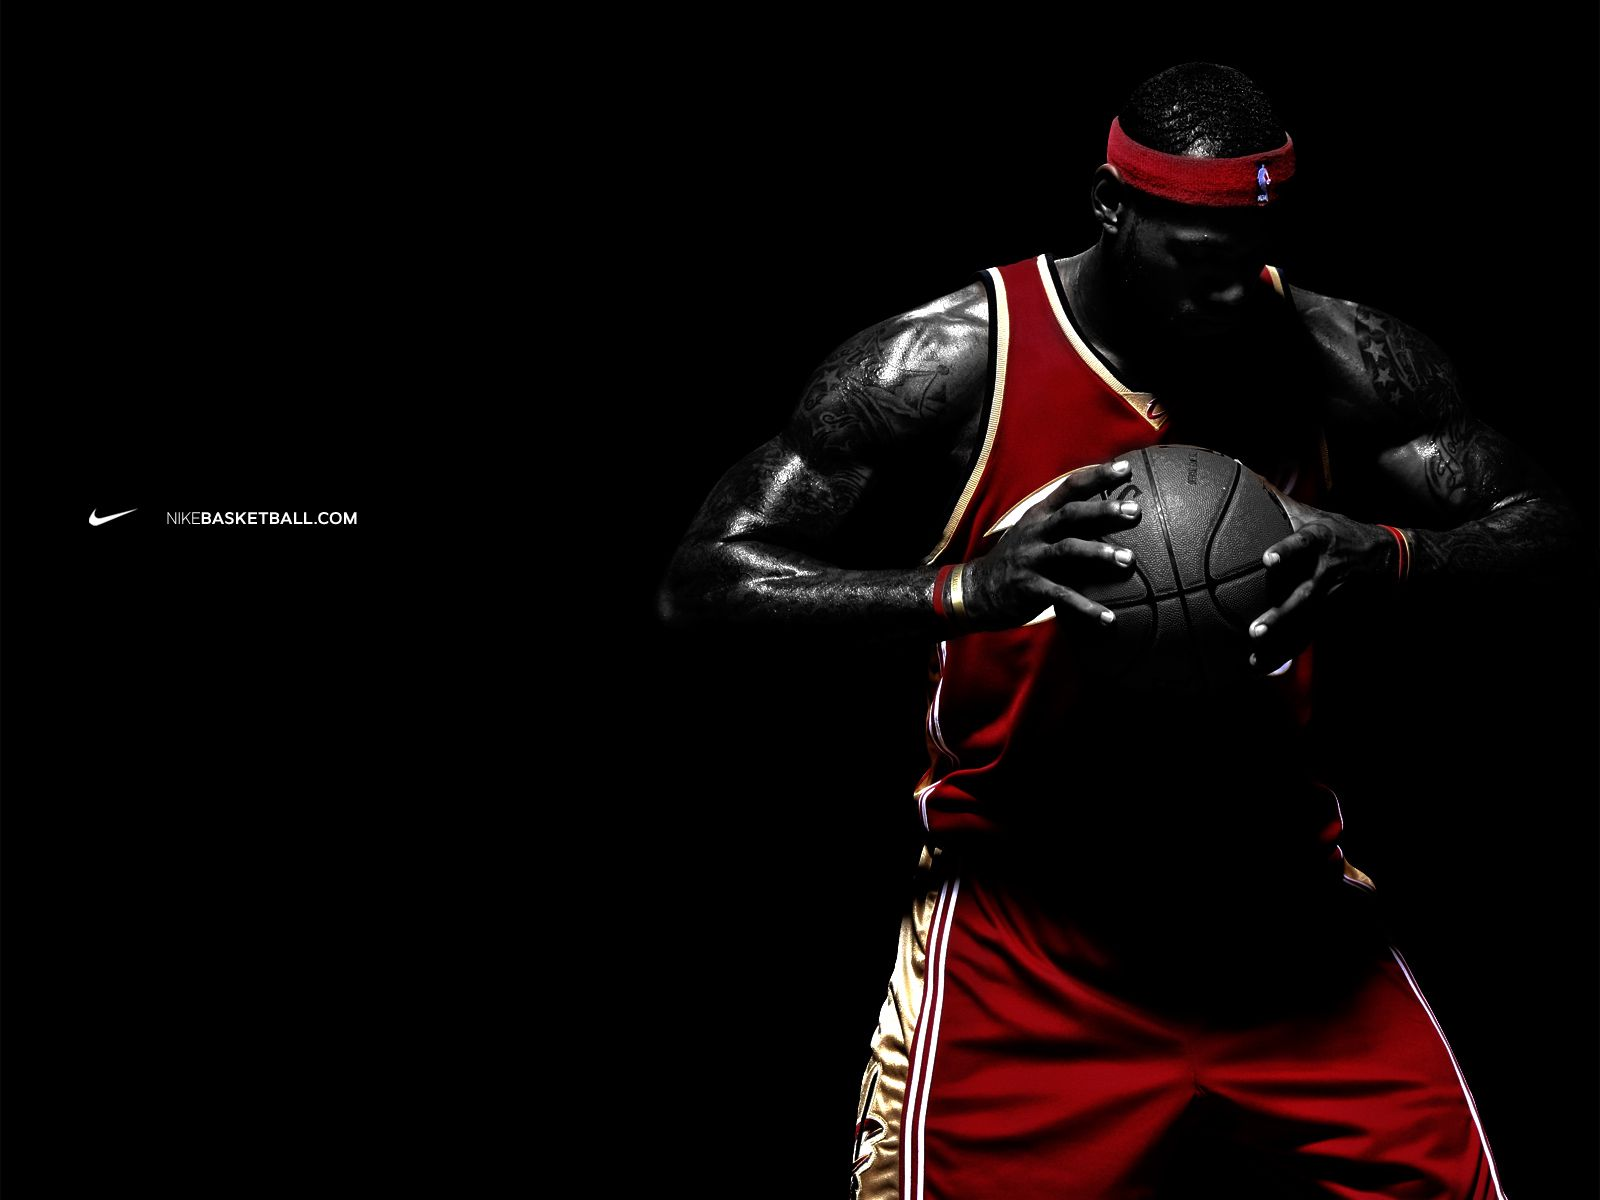 lebron james nike commercial 2014 ... The dark background, along with the  male basketball player, are used to appeal to